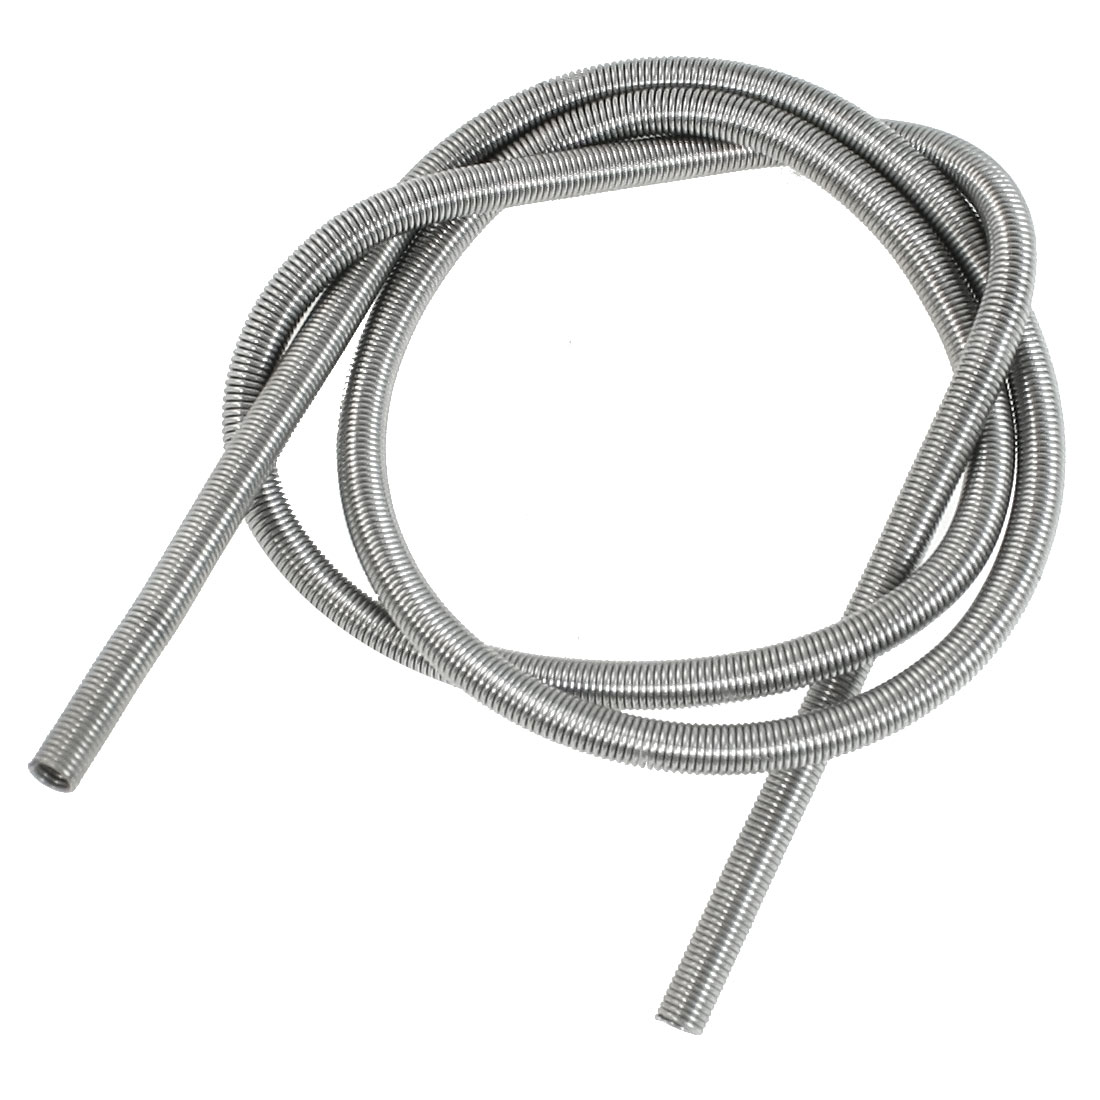 720mm Length Kiln Furnace Heating Element Coil Heater Wire 2500W AC220V